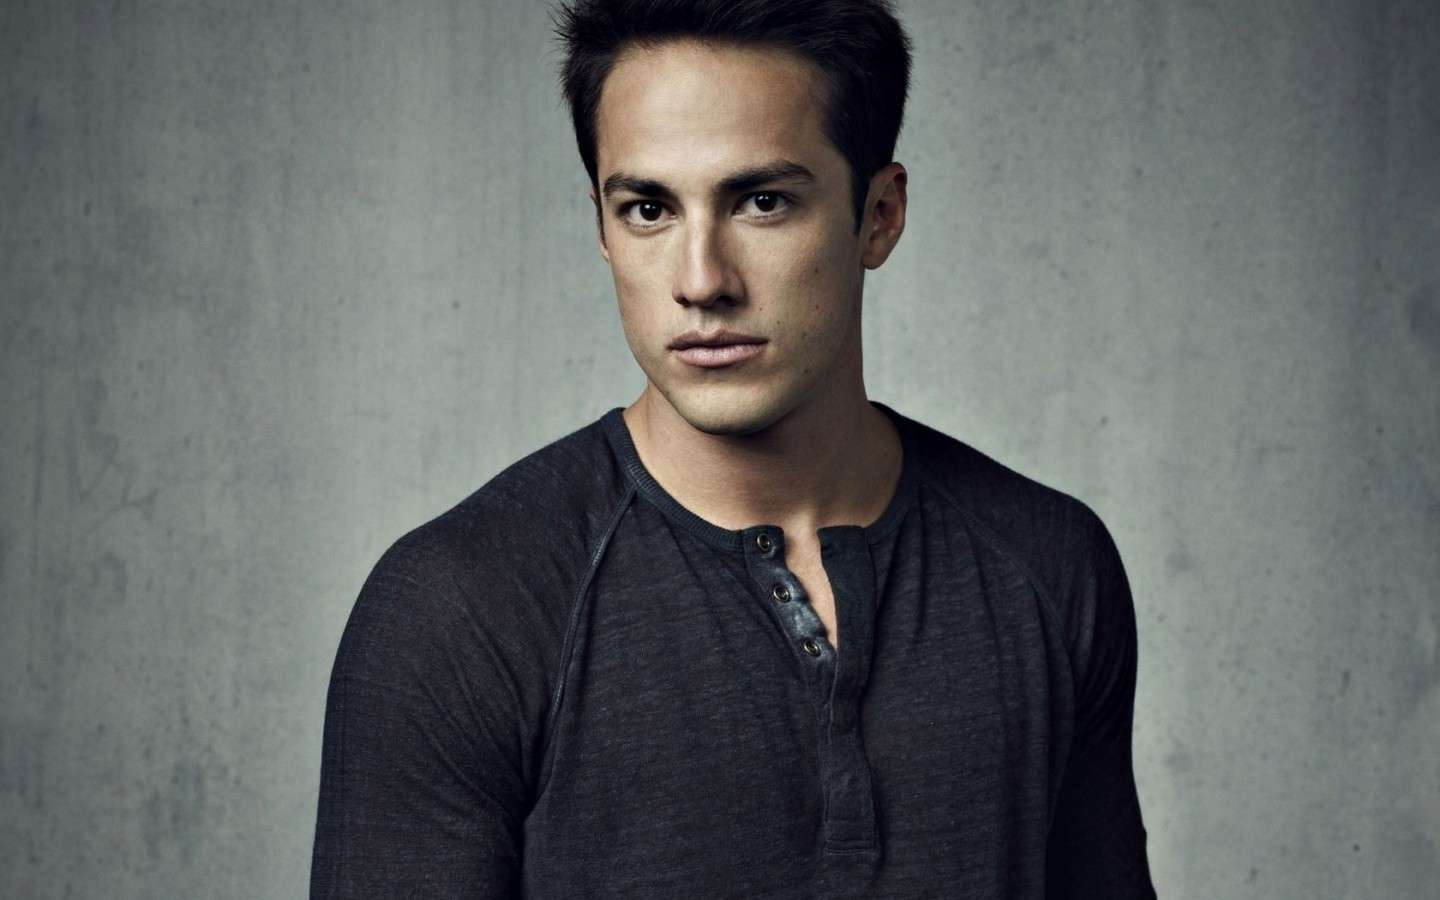 Scatto di Michael Trevino